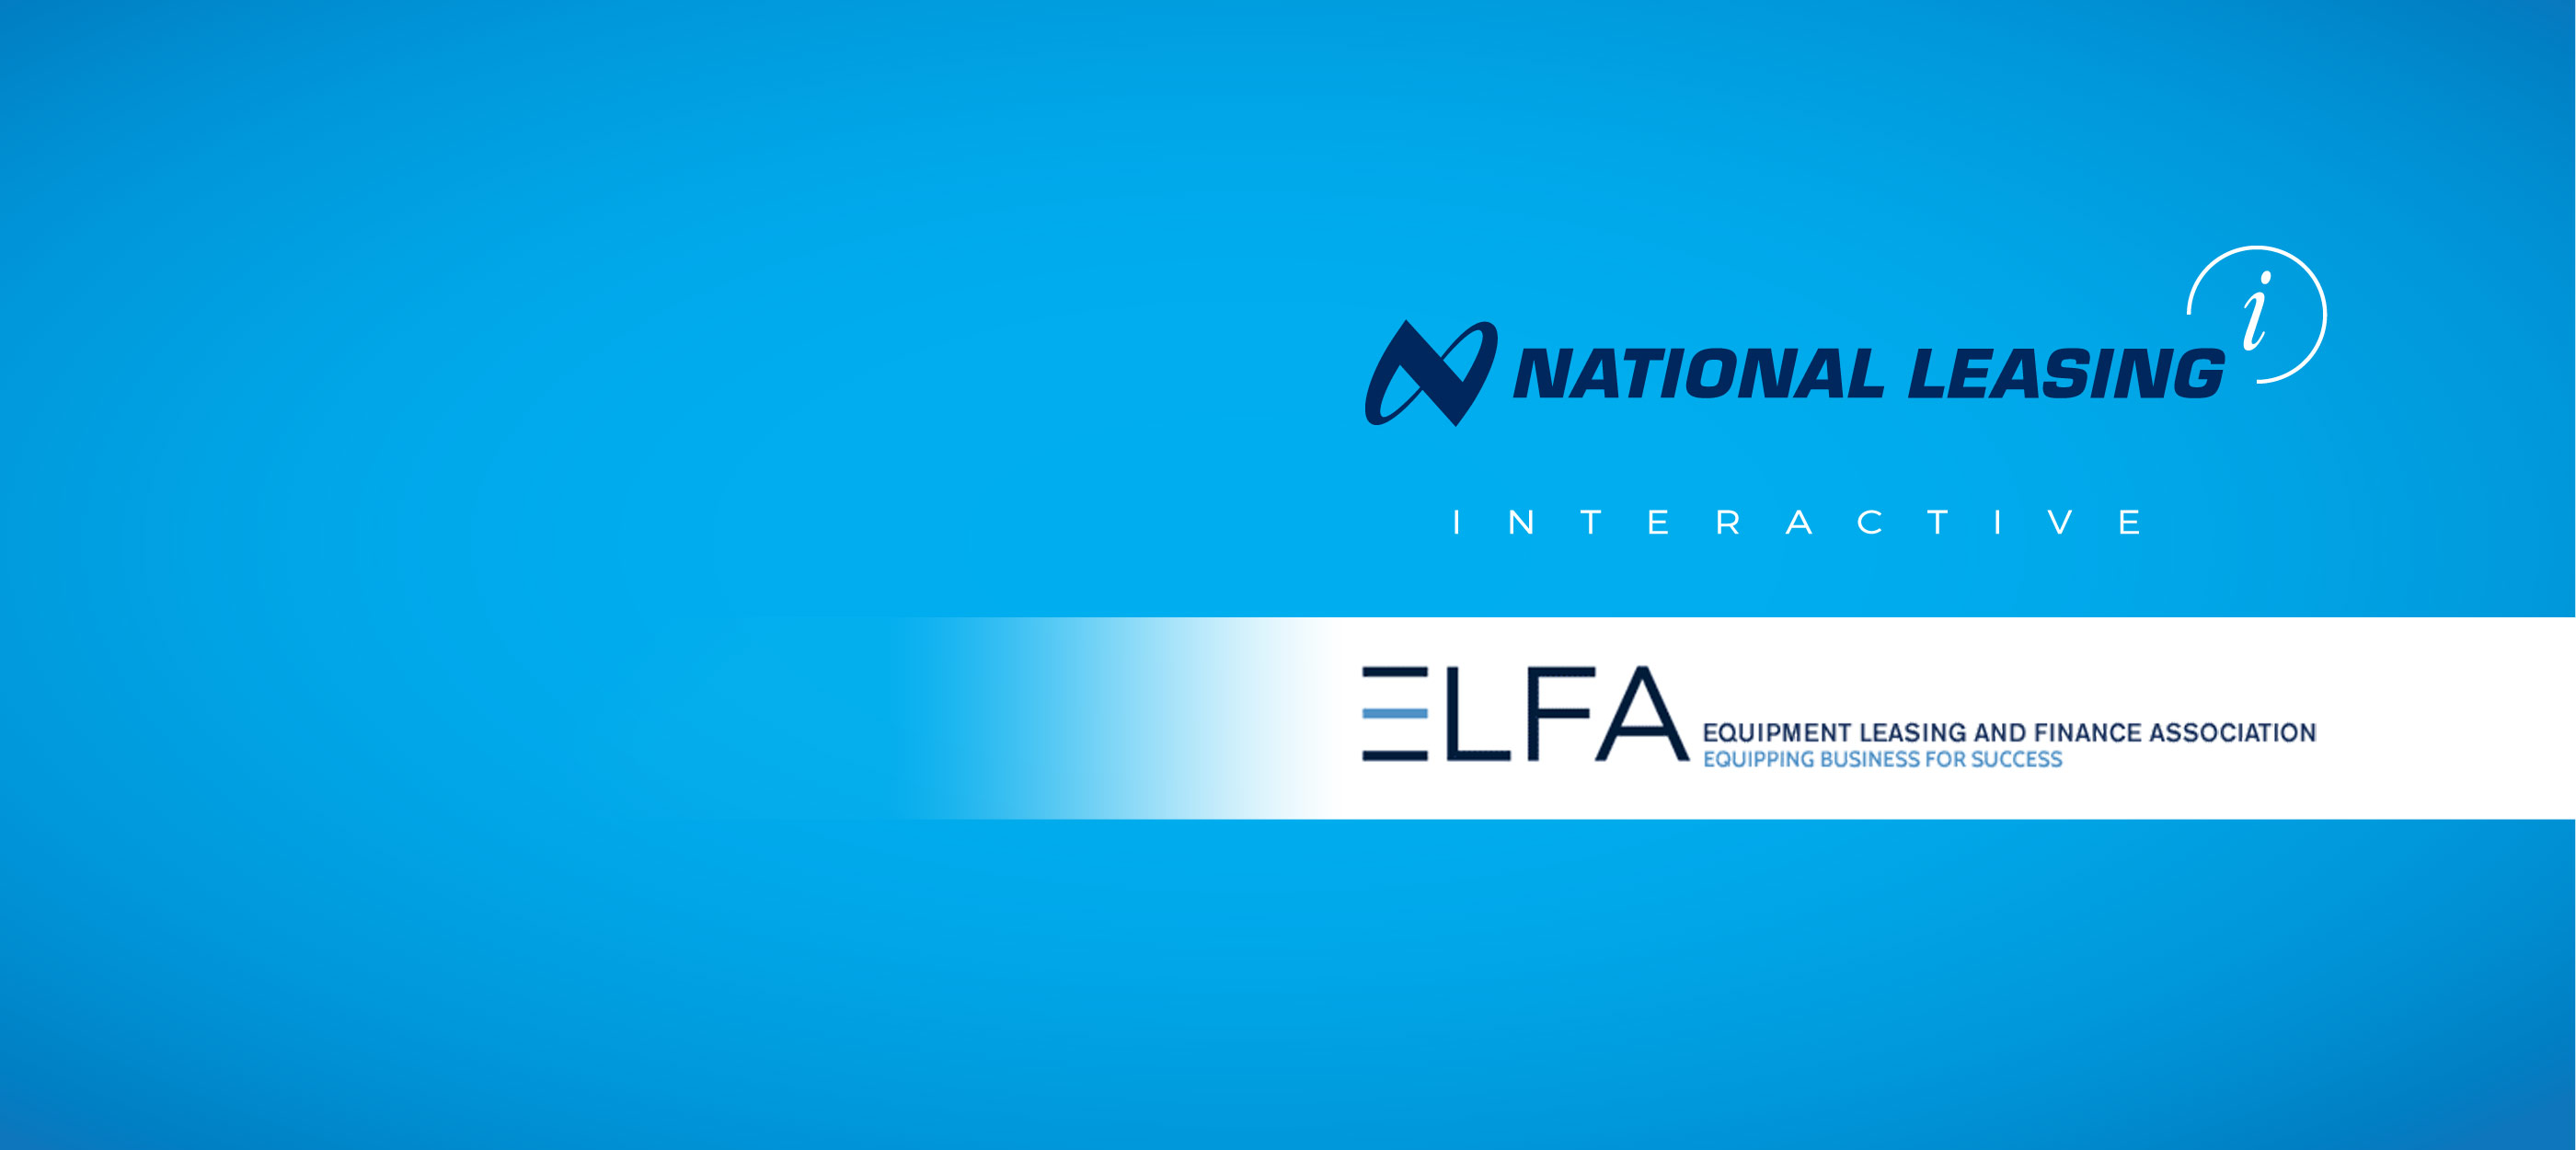 Equipment Leasing and Finance Association logo, National Leasing logo